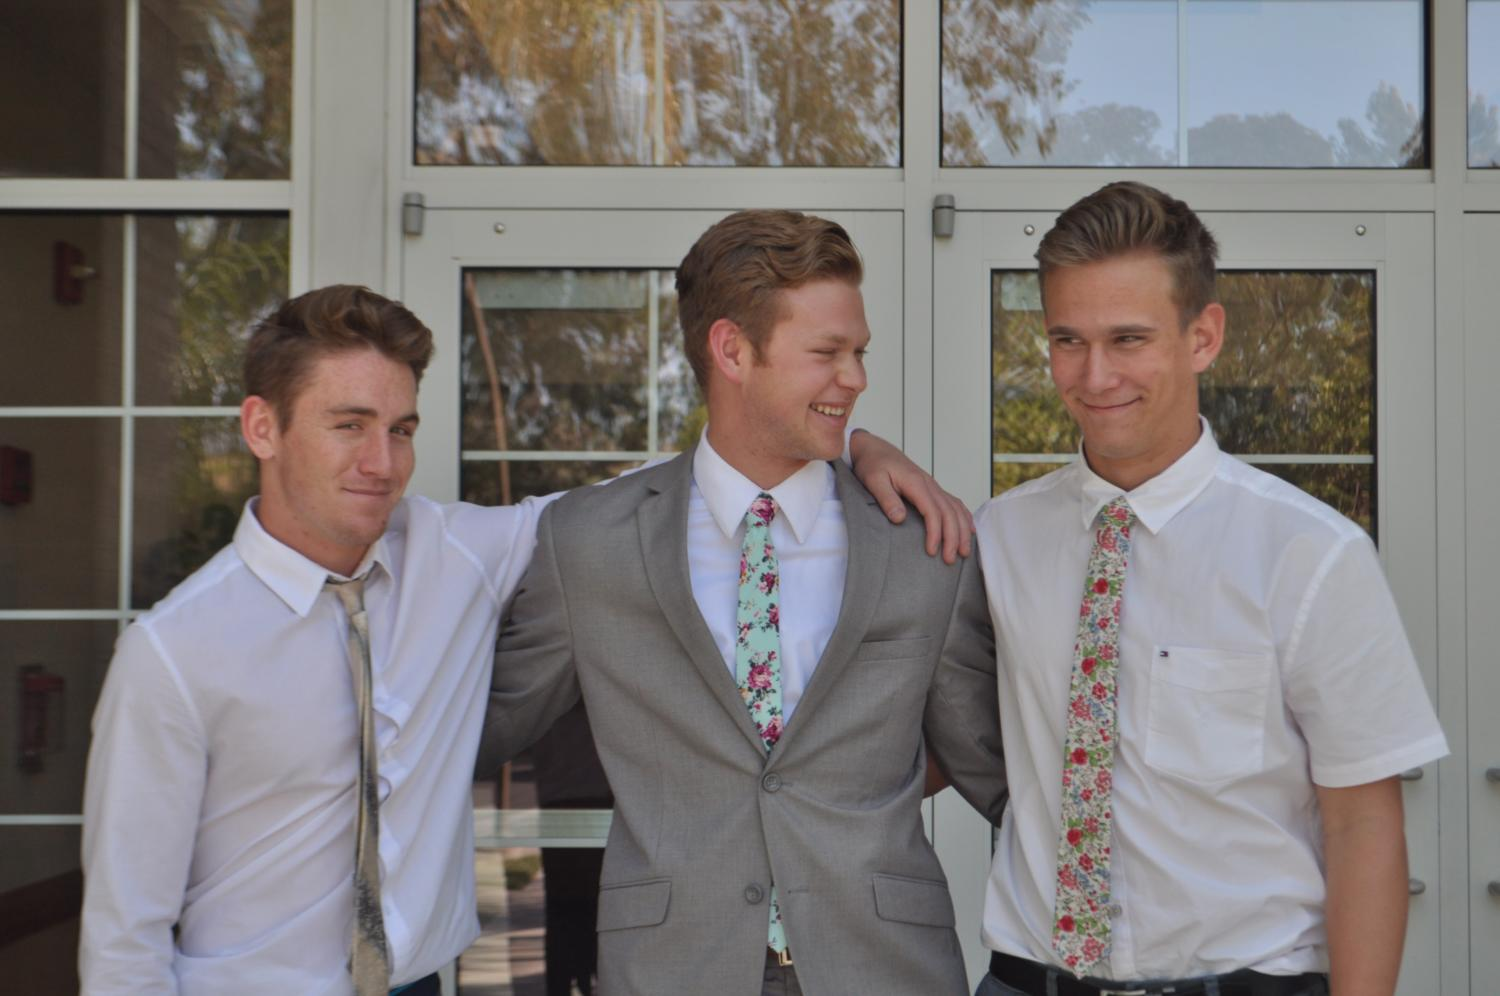 From left to right,  Cameron Buchanan, Adam Wright, and Cayden McCluskey. Pictured here in their Sunday best after church, these three SJHHS Mormon students will be joining some of their fellow students as they embark on their two year mission.